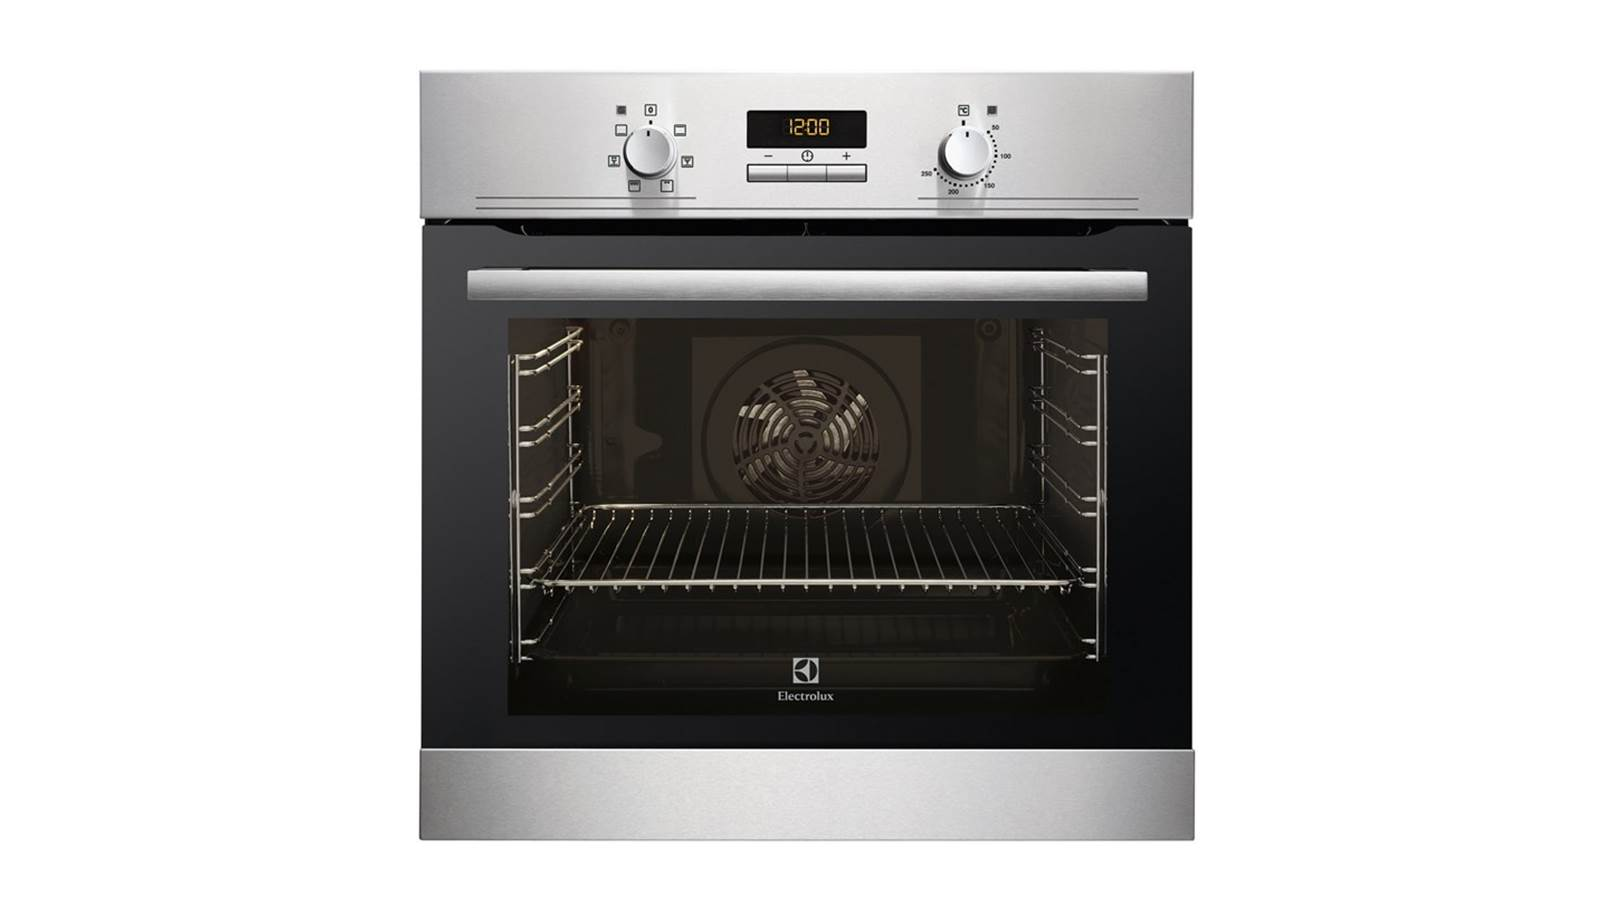 Electrolux 74L Built-In Oven with Electronic Temperature Control